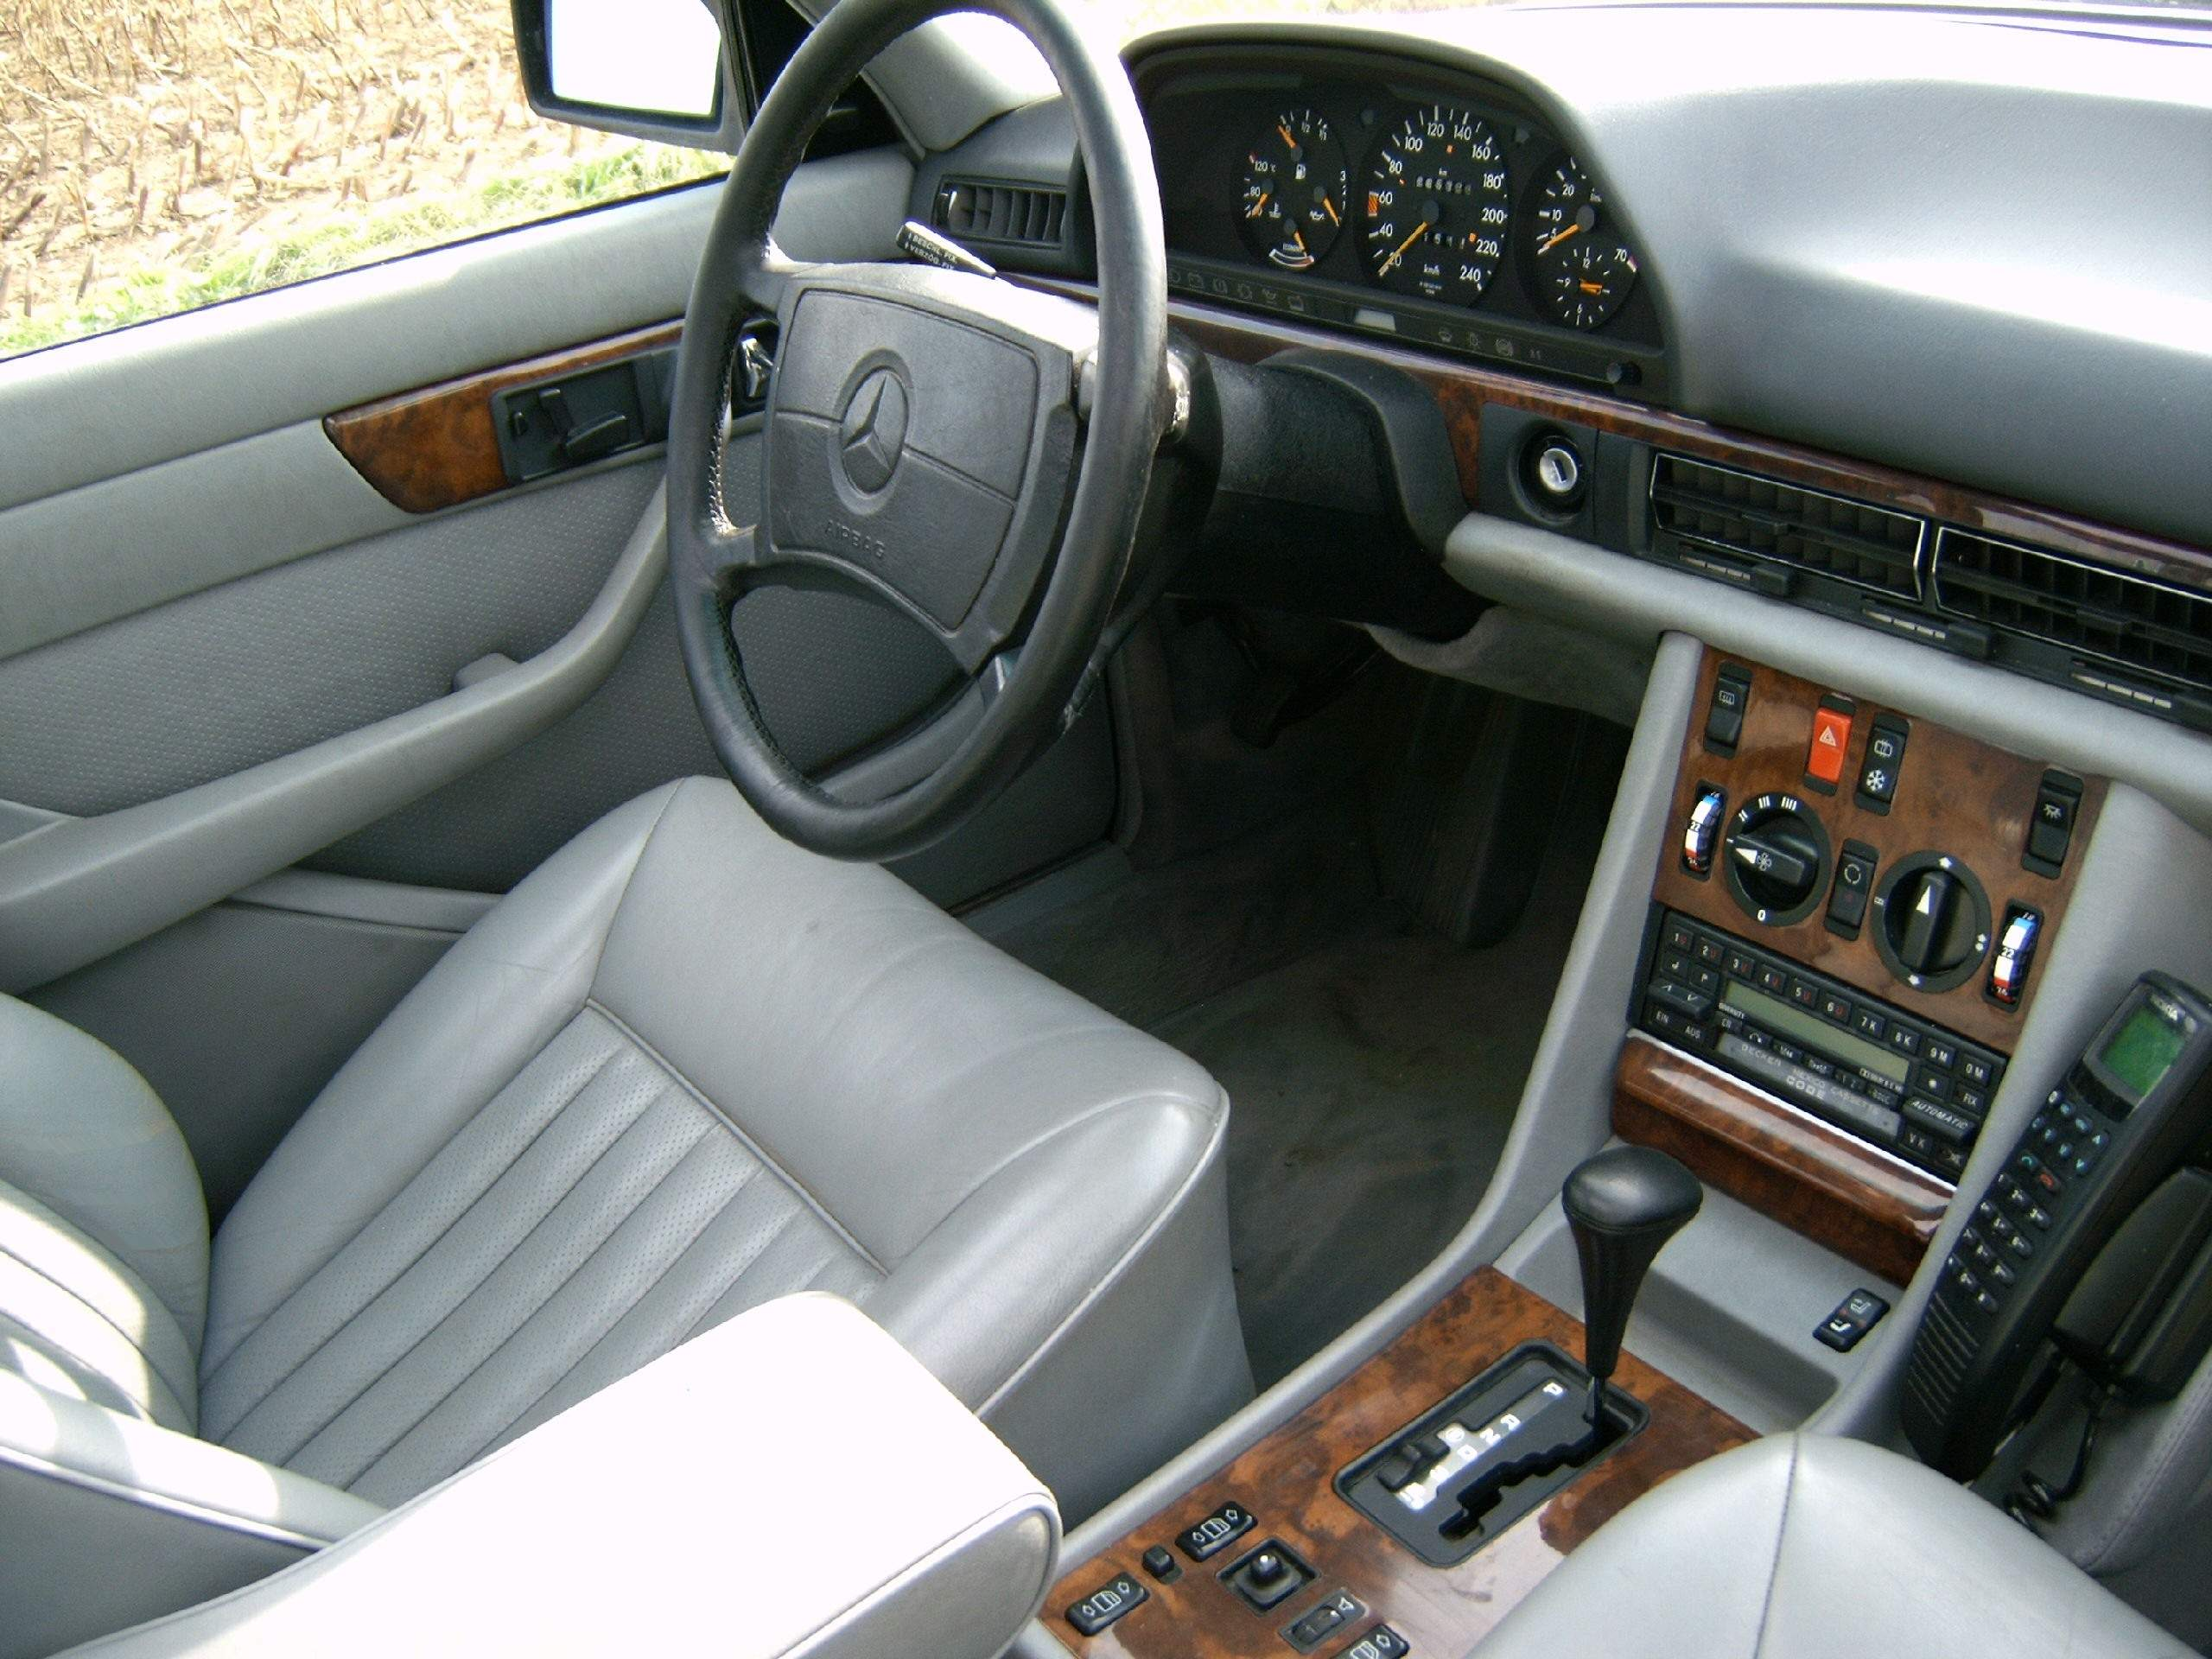 W126 S-Class driver's seat with SRS airbag in steering wheel